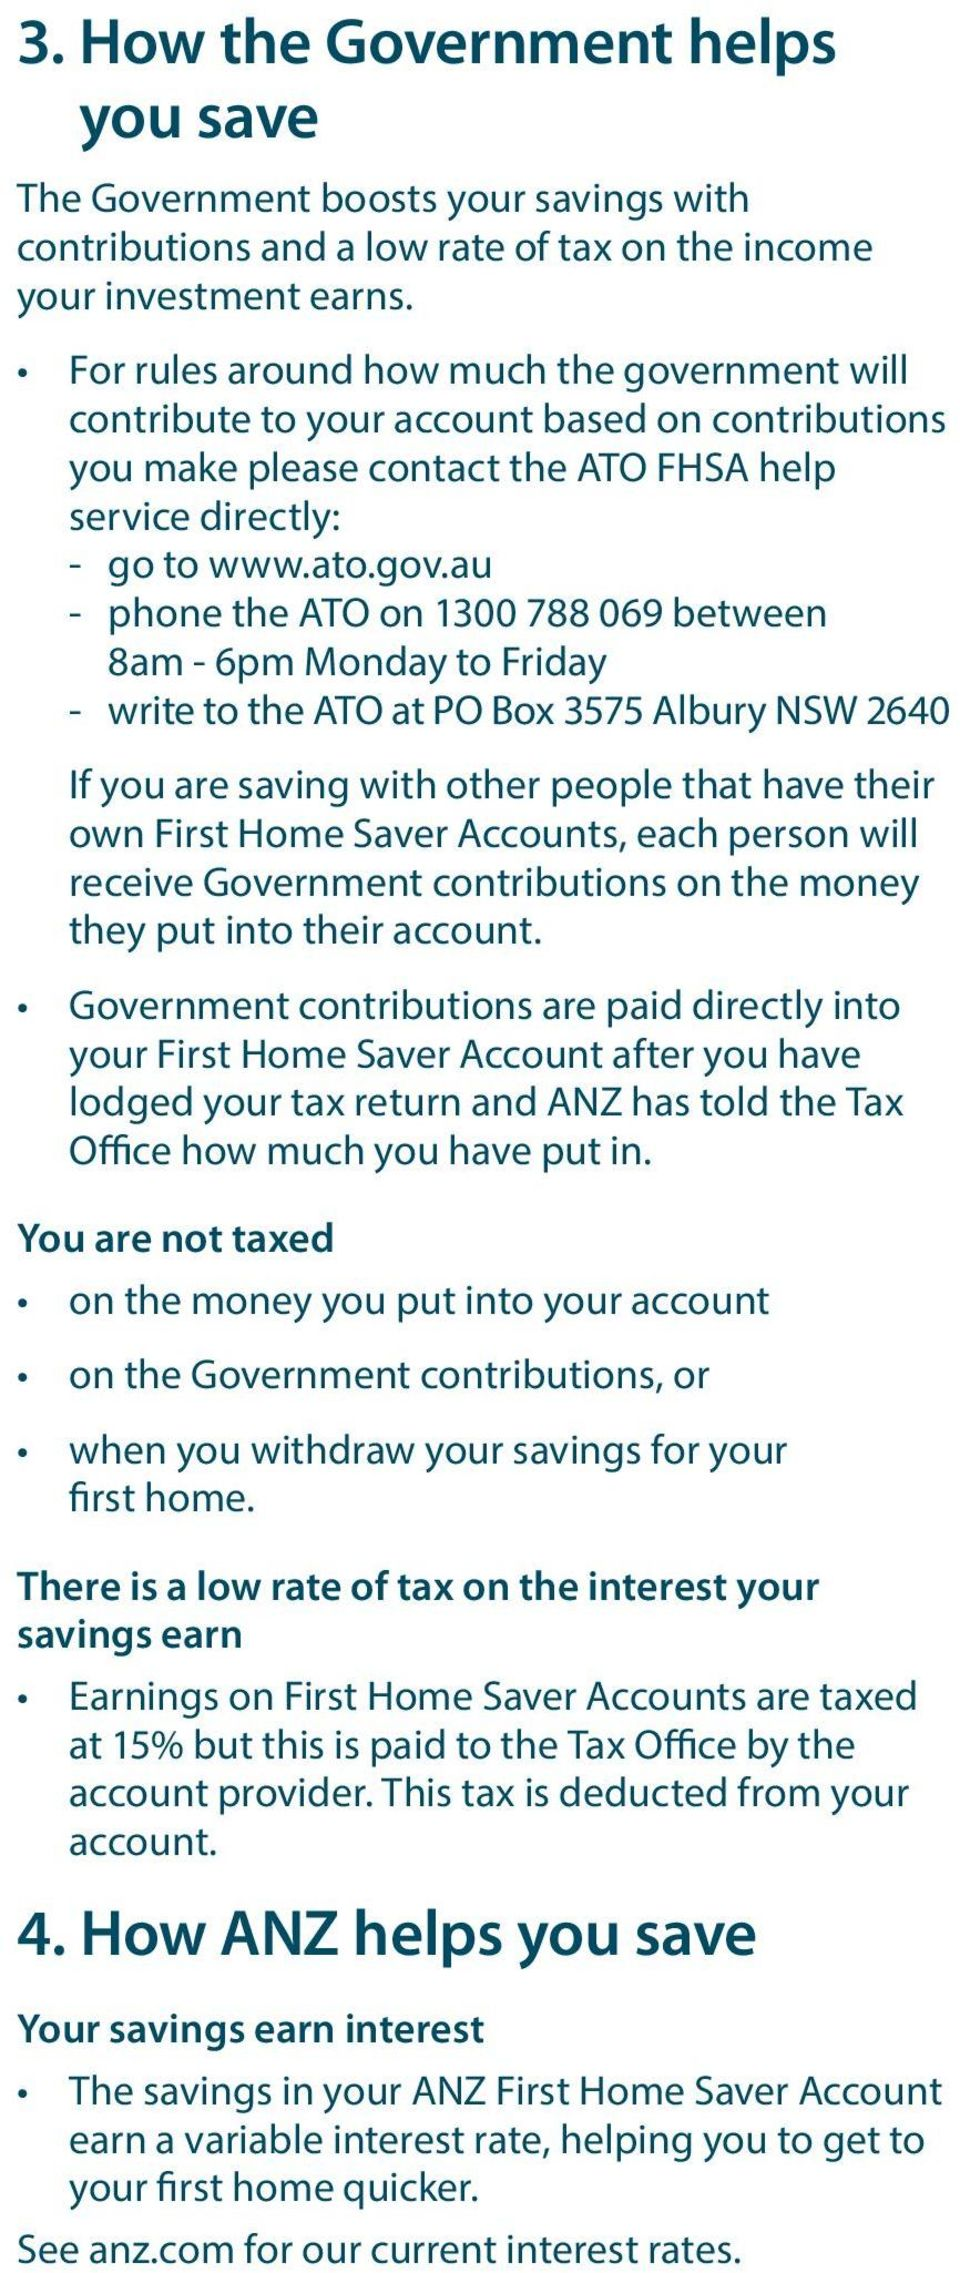 rnment will contribute to your account based on contributions you make please contact the ATO FHSA help service directly: - go to www.ato.gov.